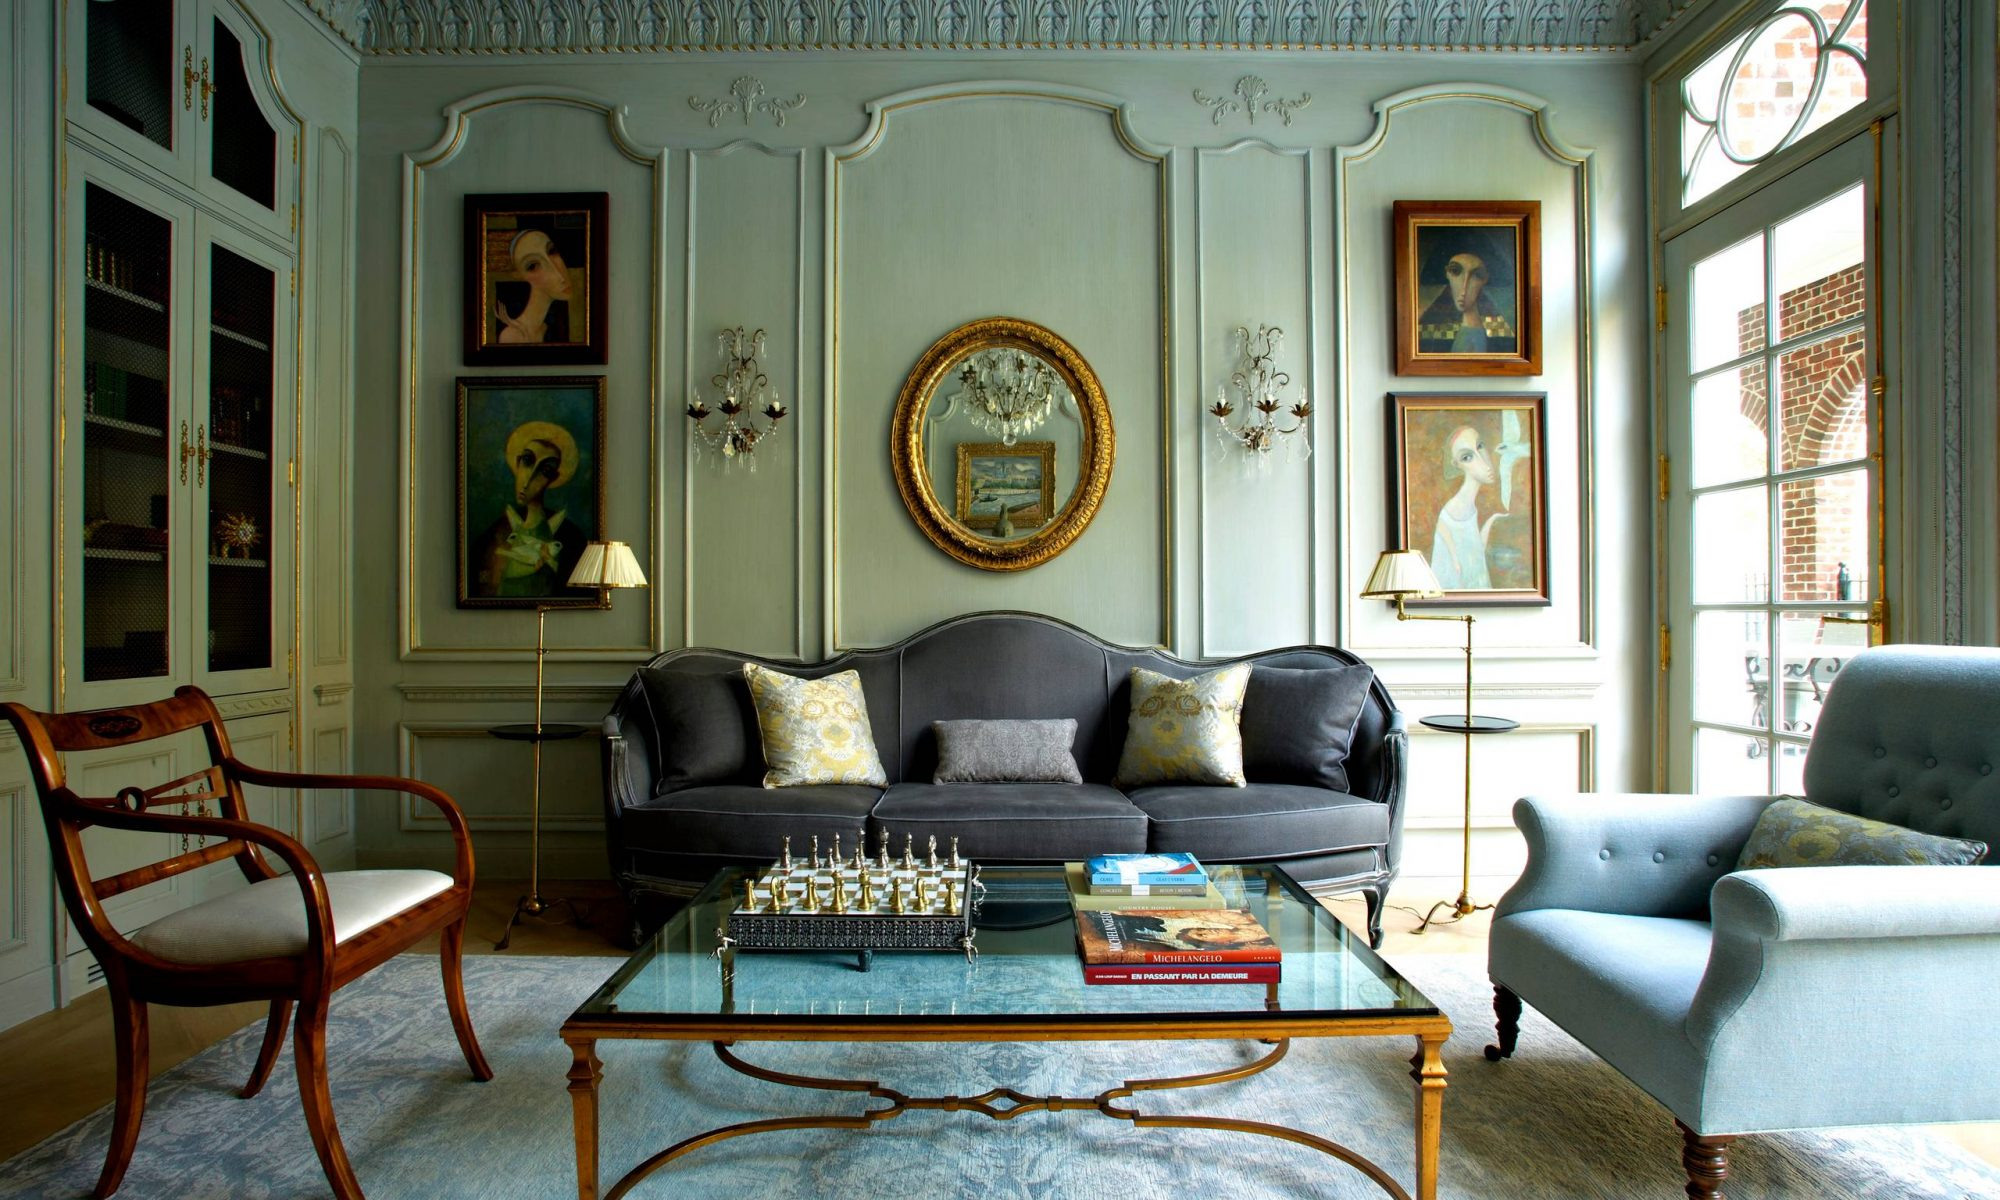 Decoraci n vintage en tu sal n blog de muebles y decoraci n for Decoracion de salones vintage